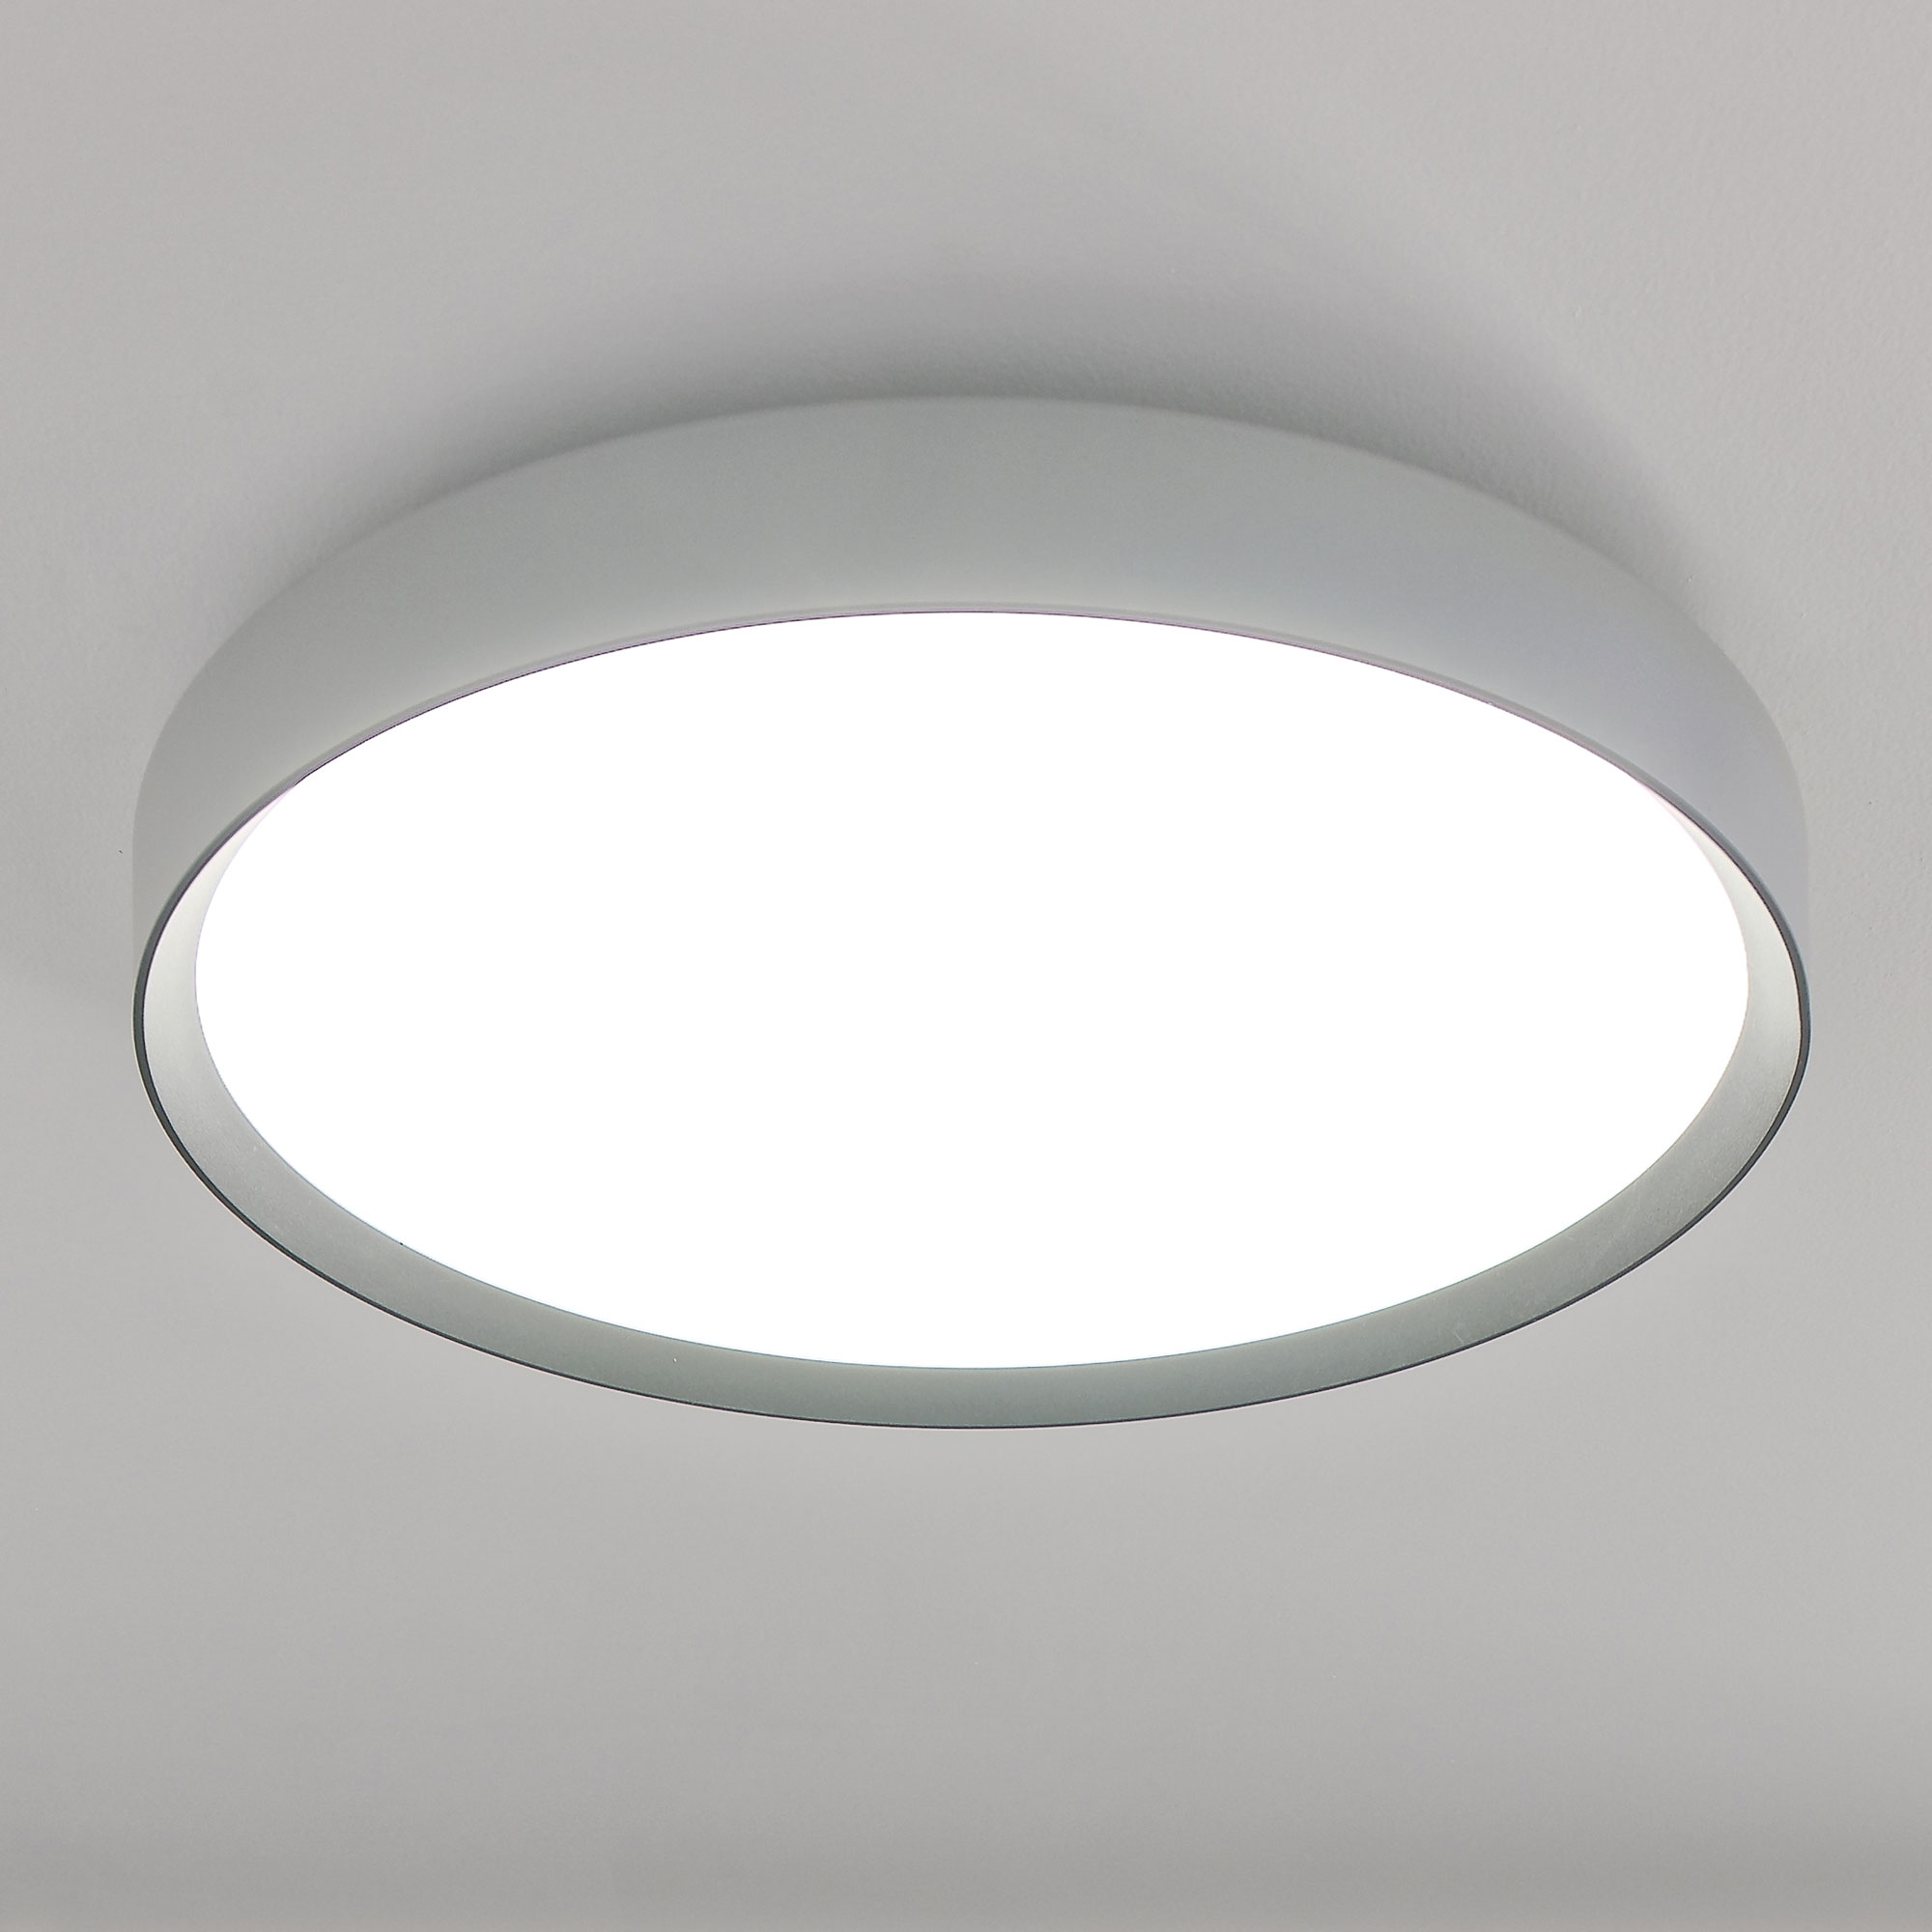 Ragato flush mount ceiling light by molto luce 603 1102955usa mozeypictures Choice Image